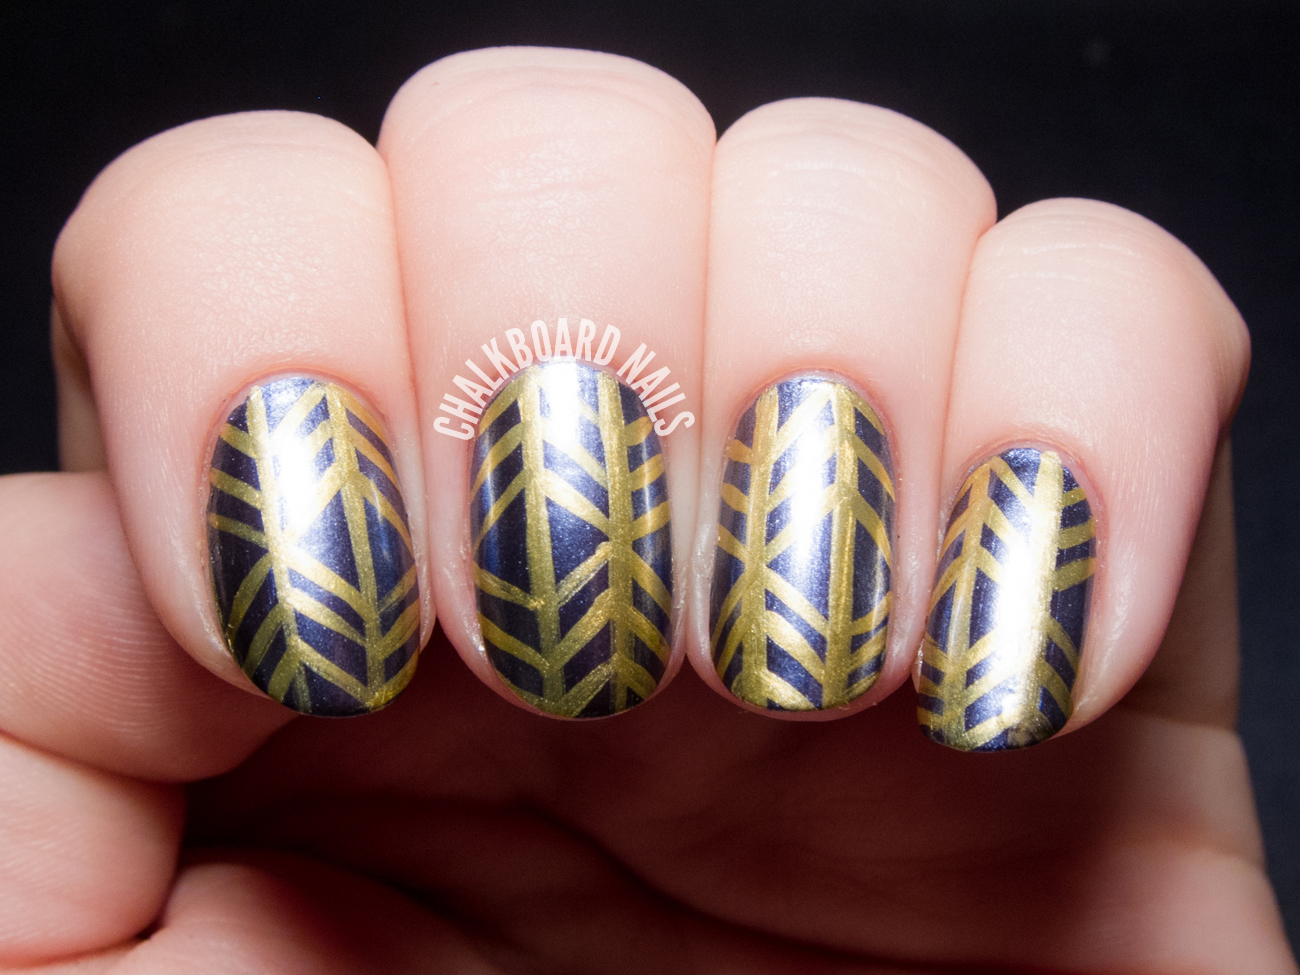 Metallic herringbone nail art by @chalkboardnails